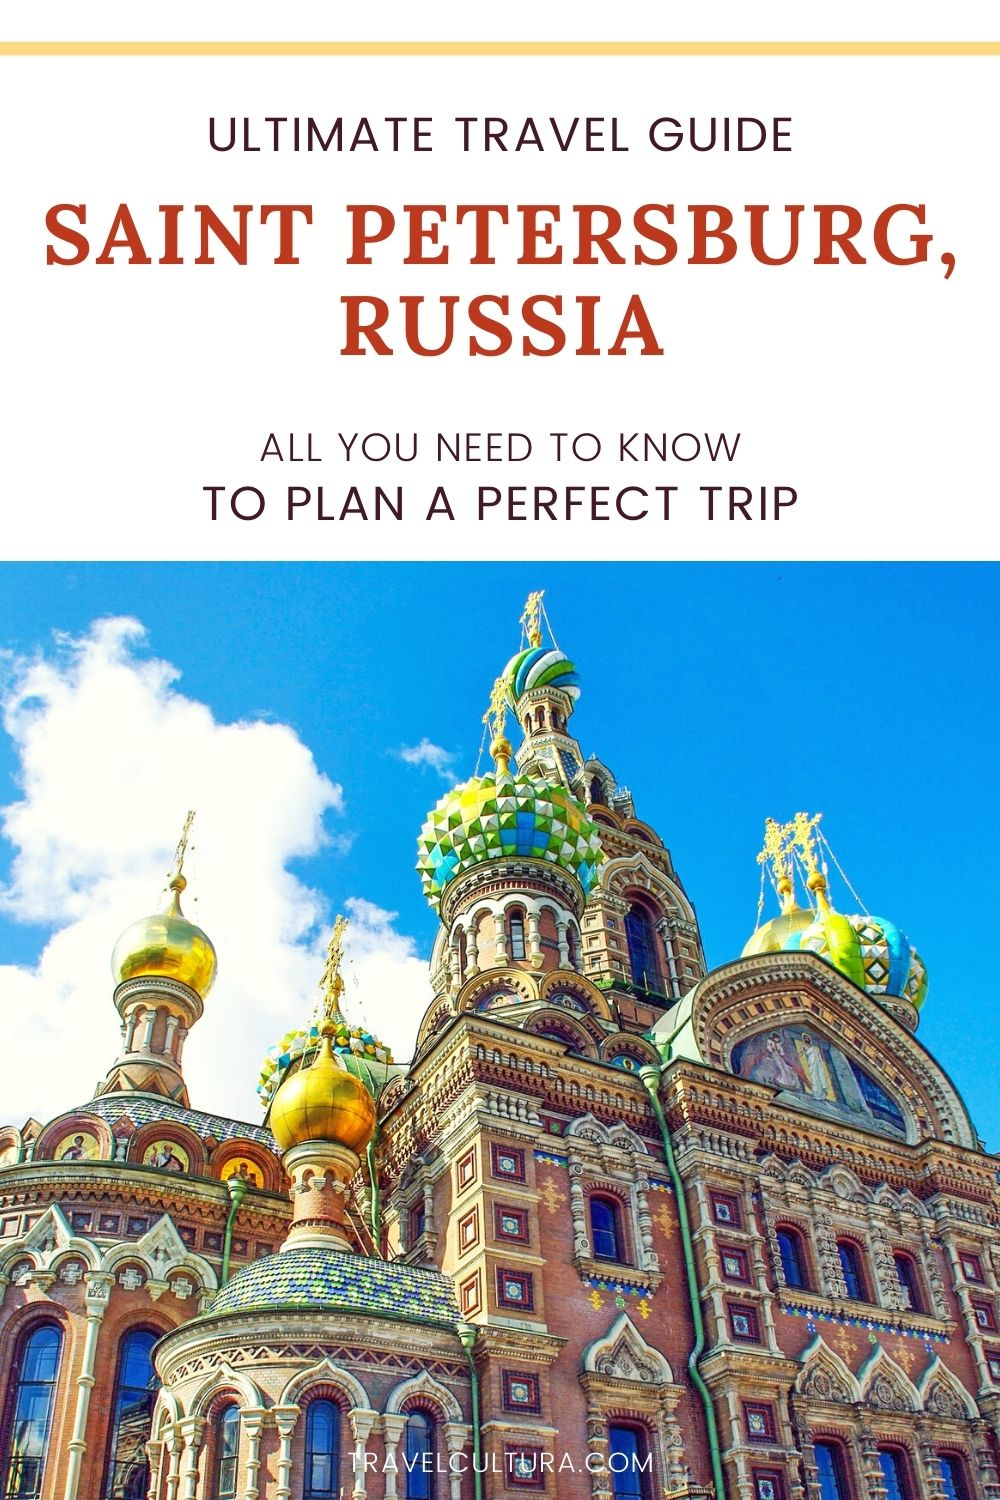 Saint Petersburg city guide: all you need to know to plan your perfect trip